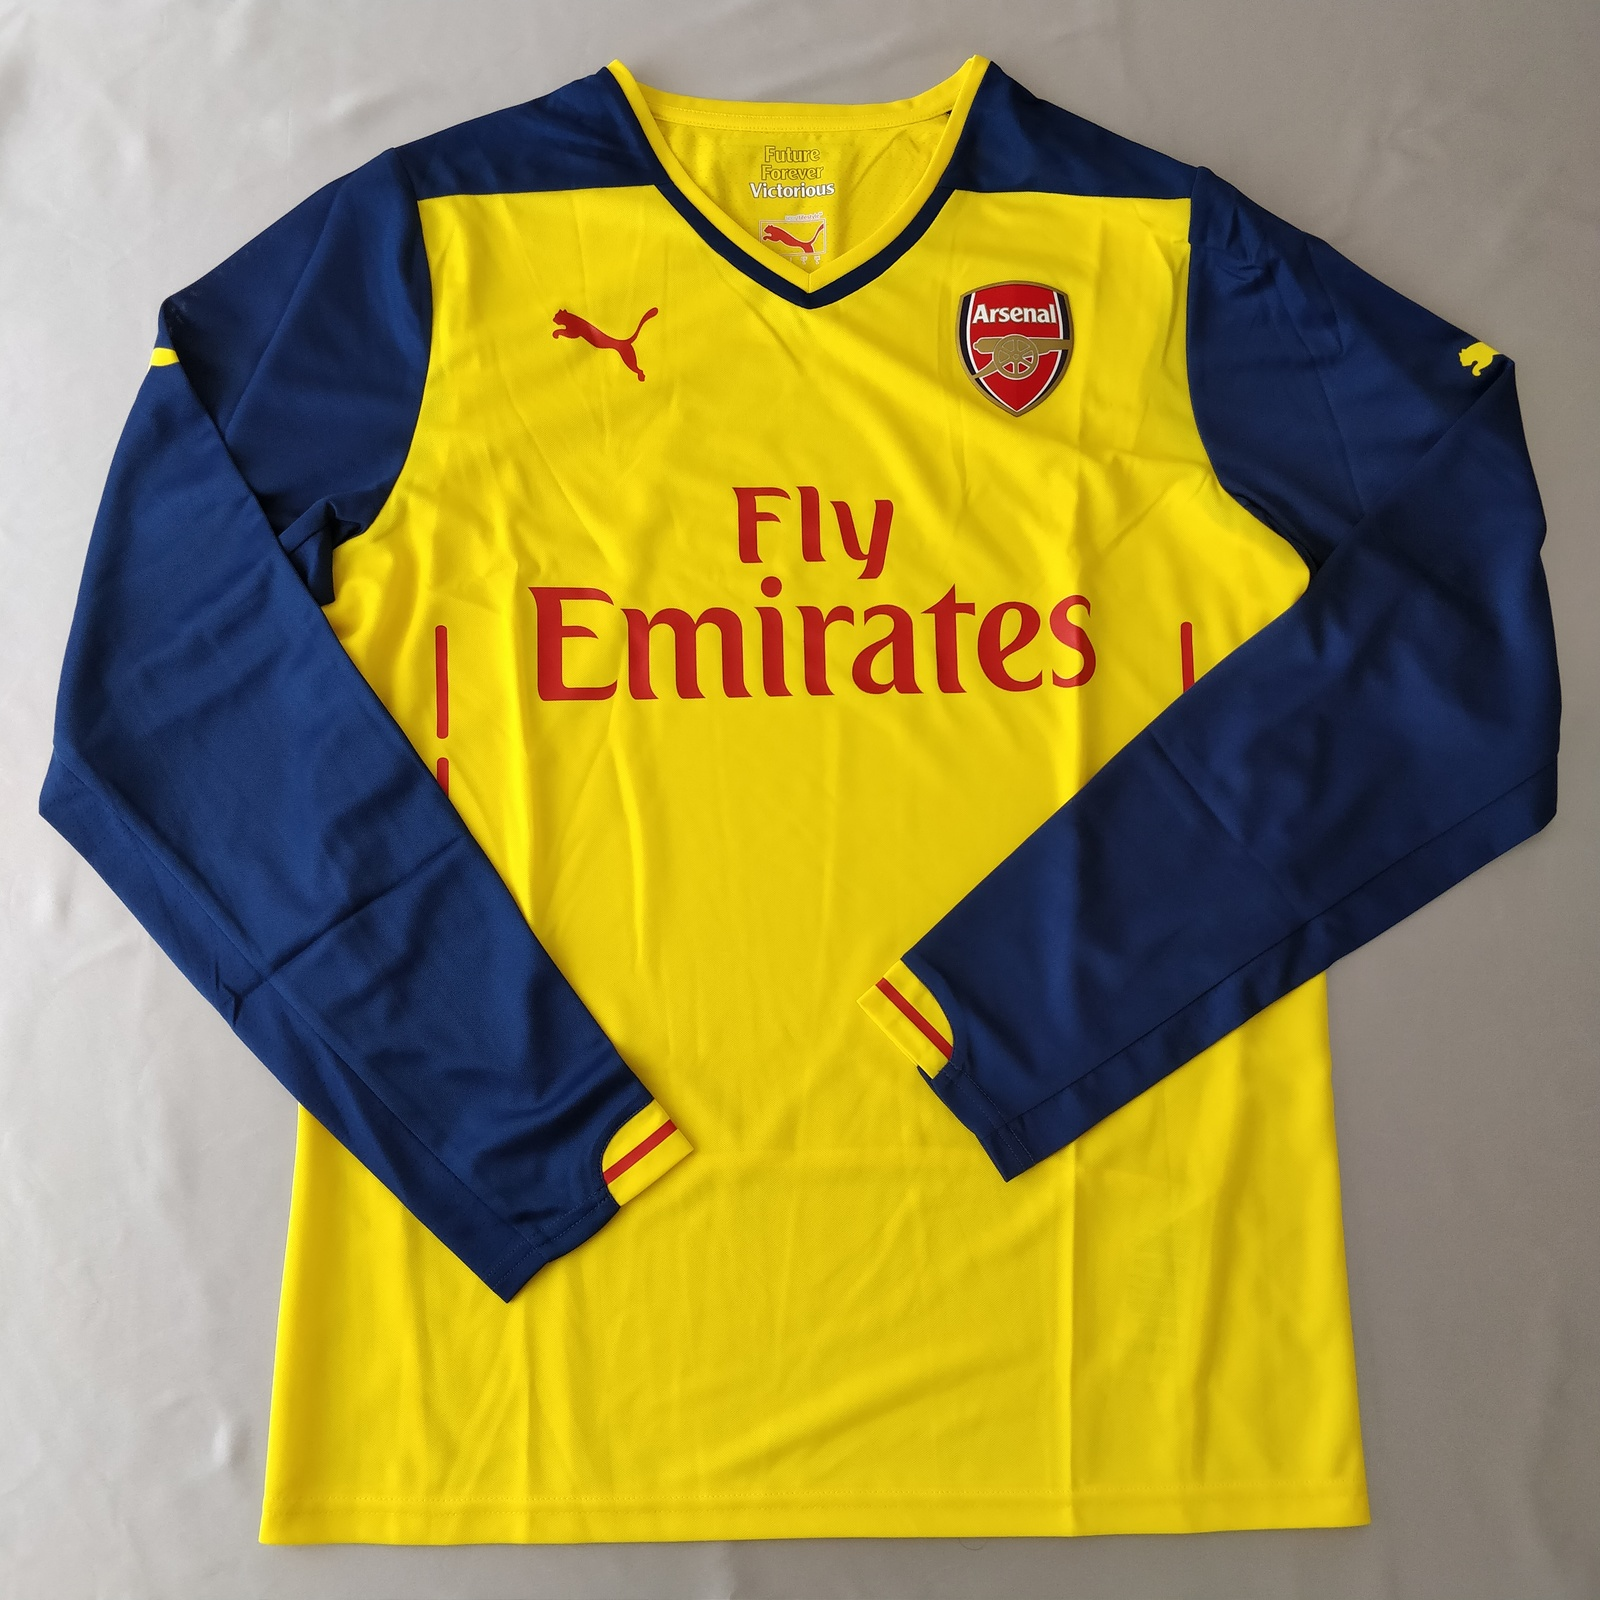 Primary image for Arsenal Away Jersey 2014/15 Puma Promo Version Yellow %100 Original Long Sleeve